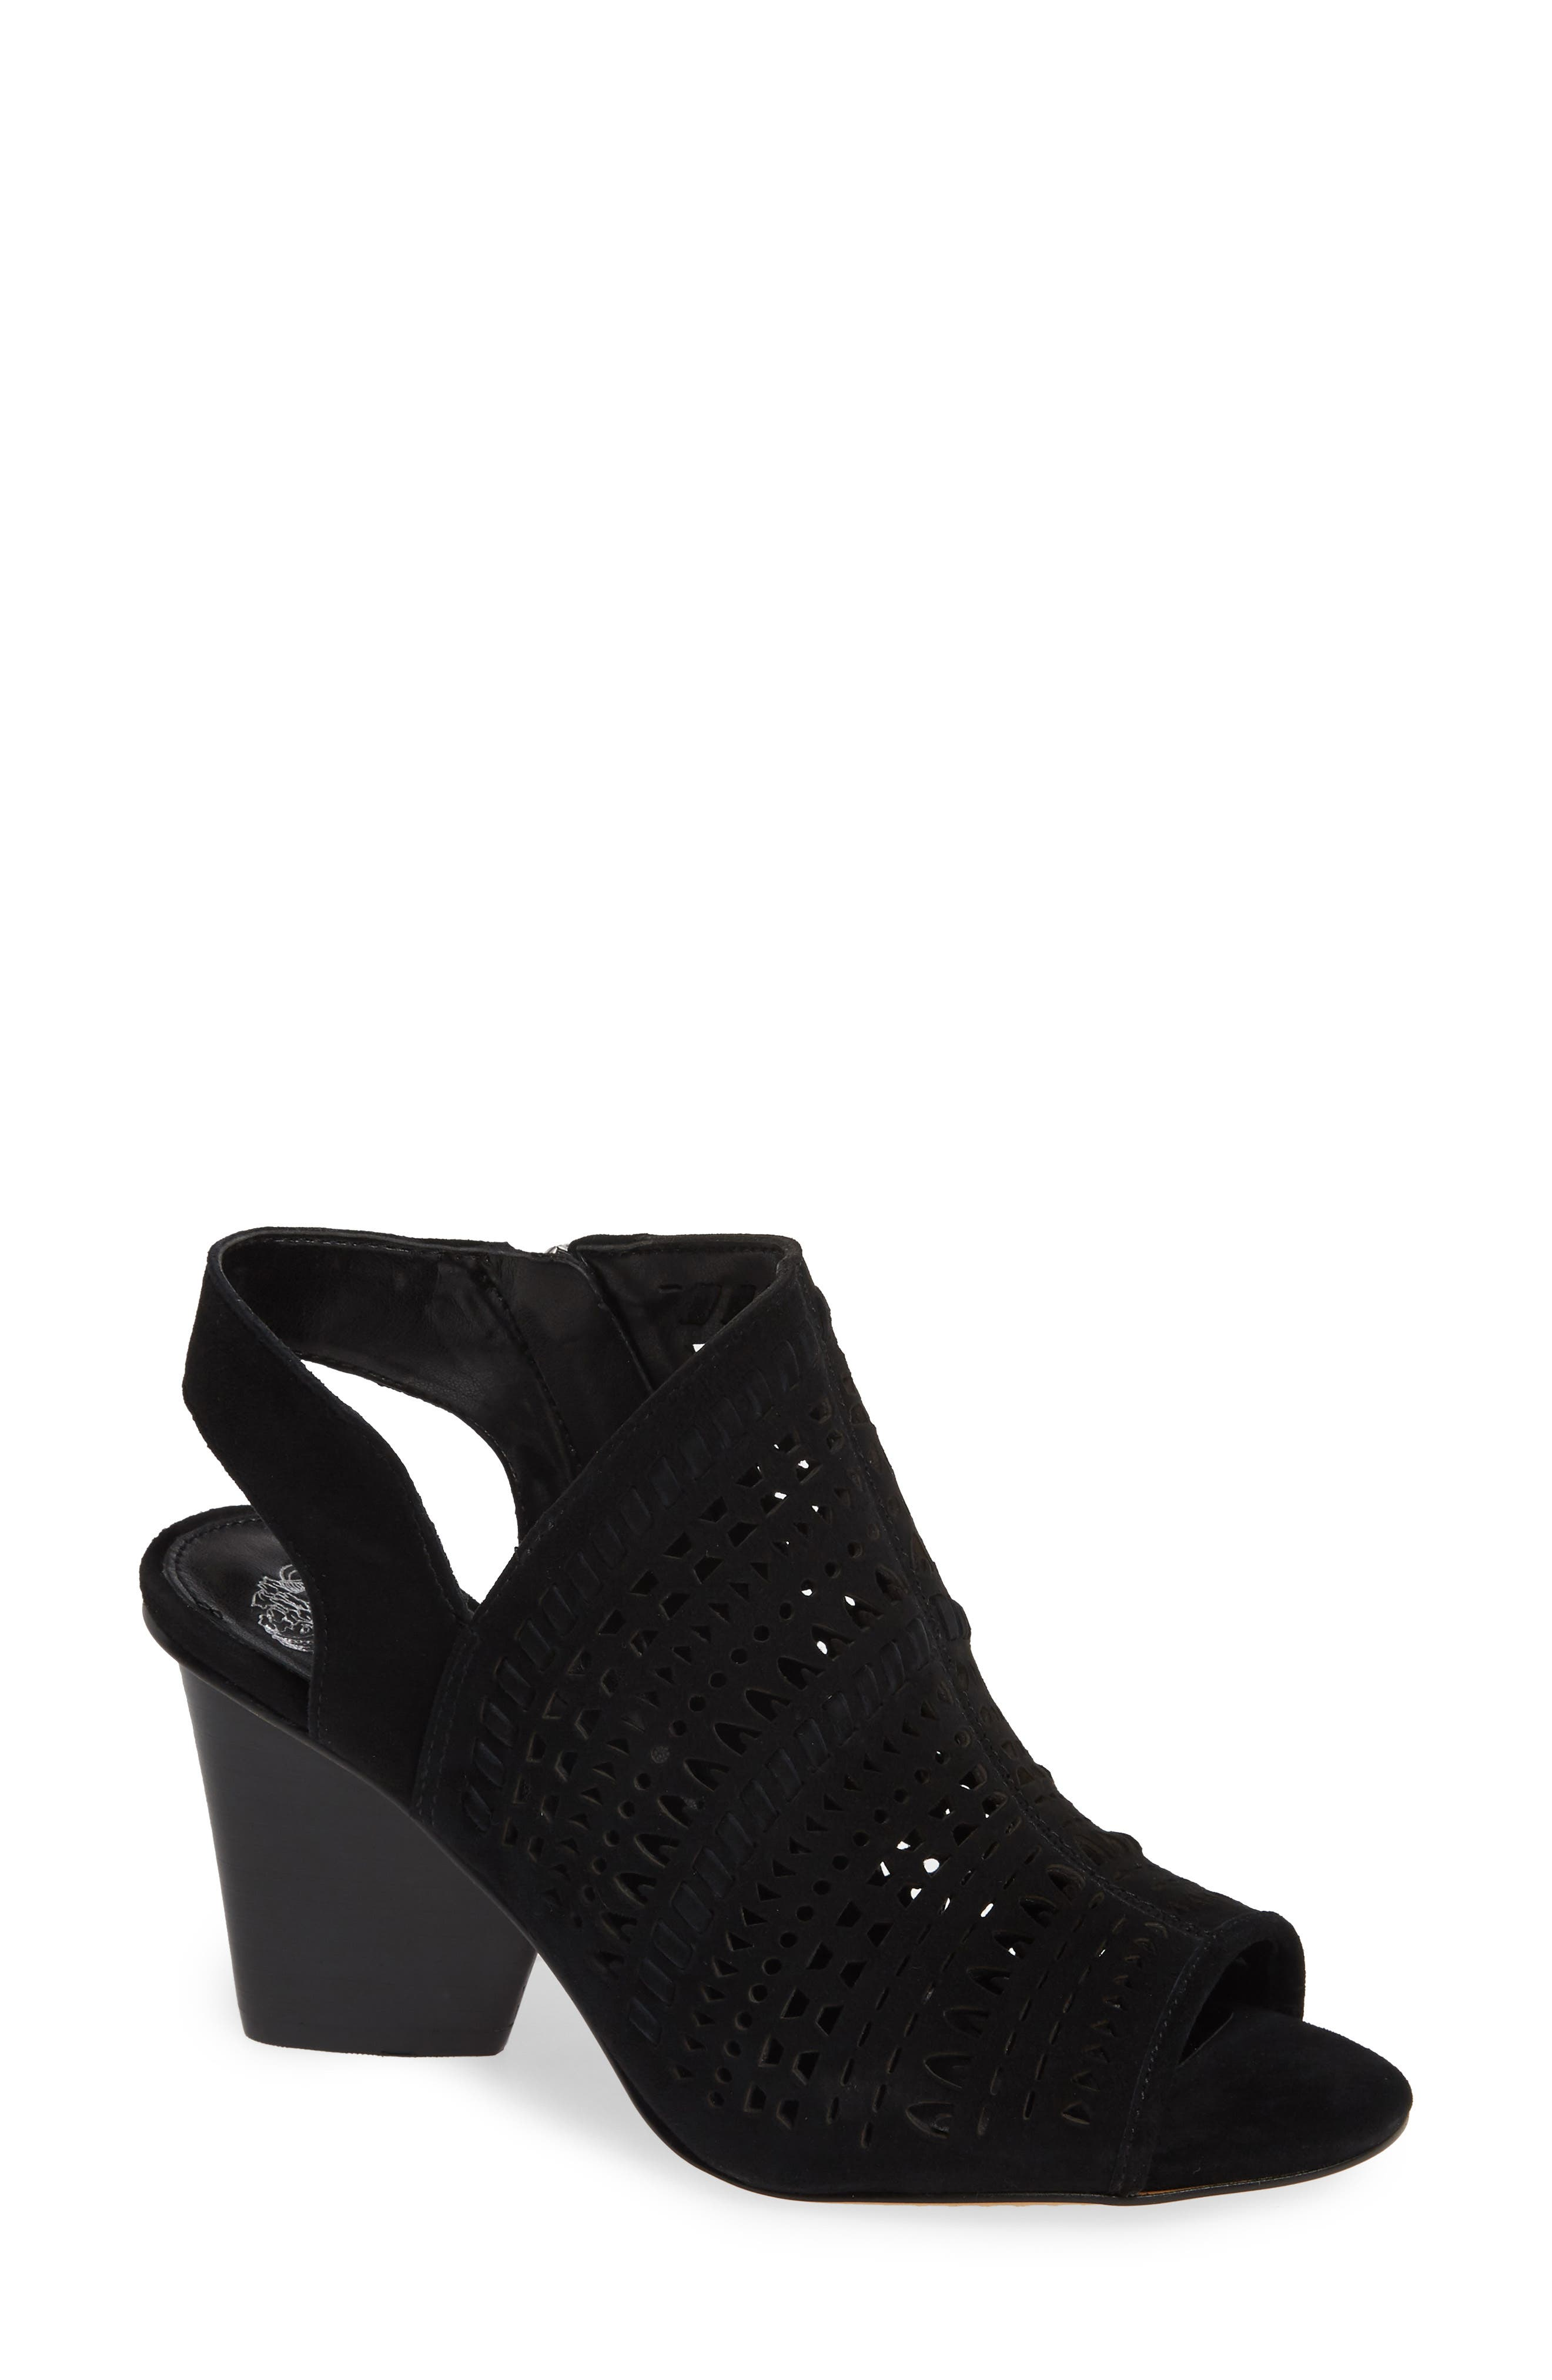 VINCE CAMUTO Derechie Perforated Shield Sandal, Main, color, BLACK SUEDE